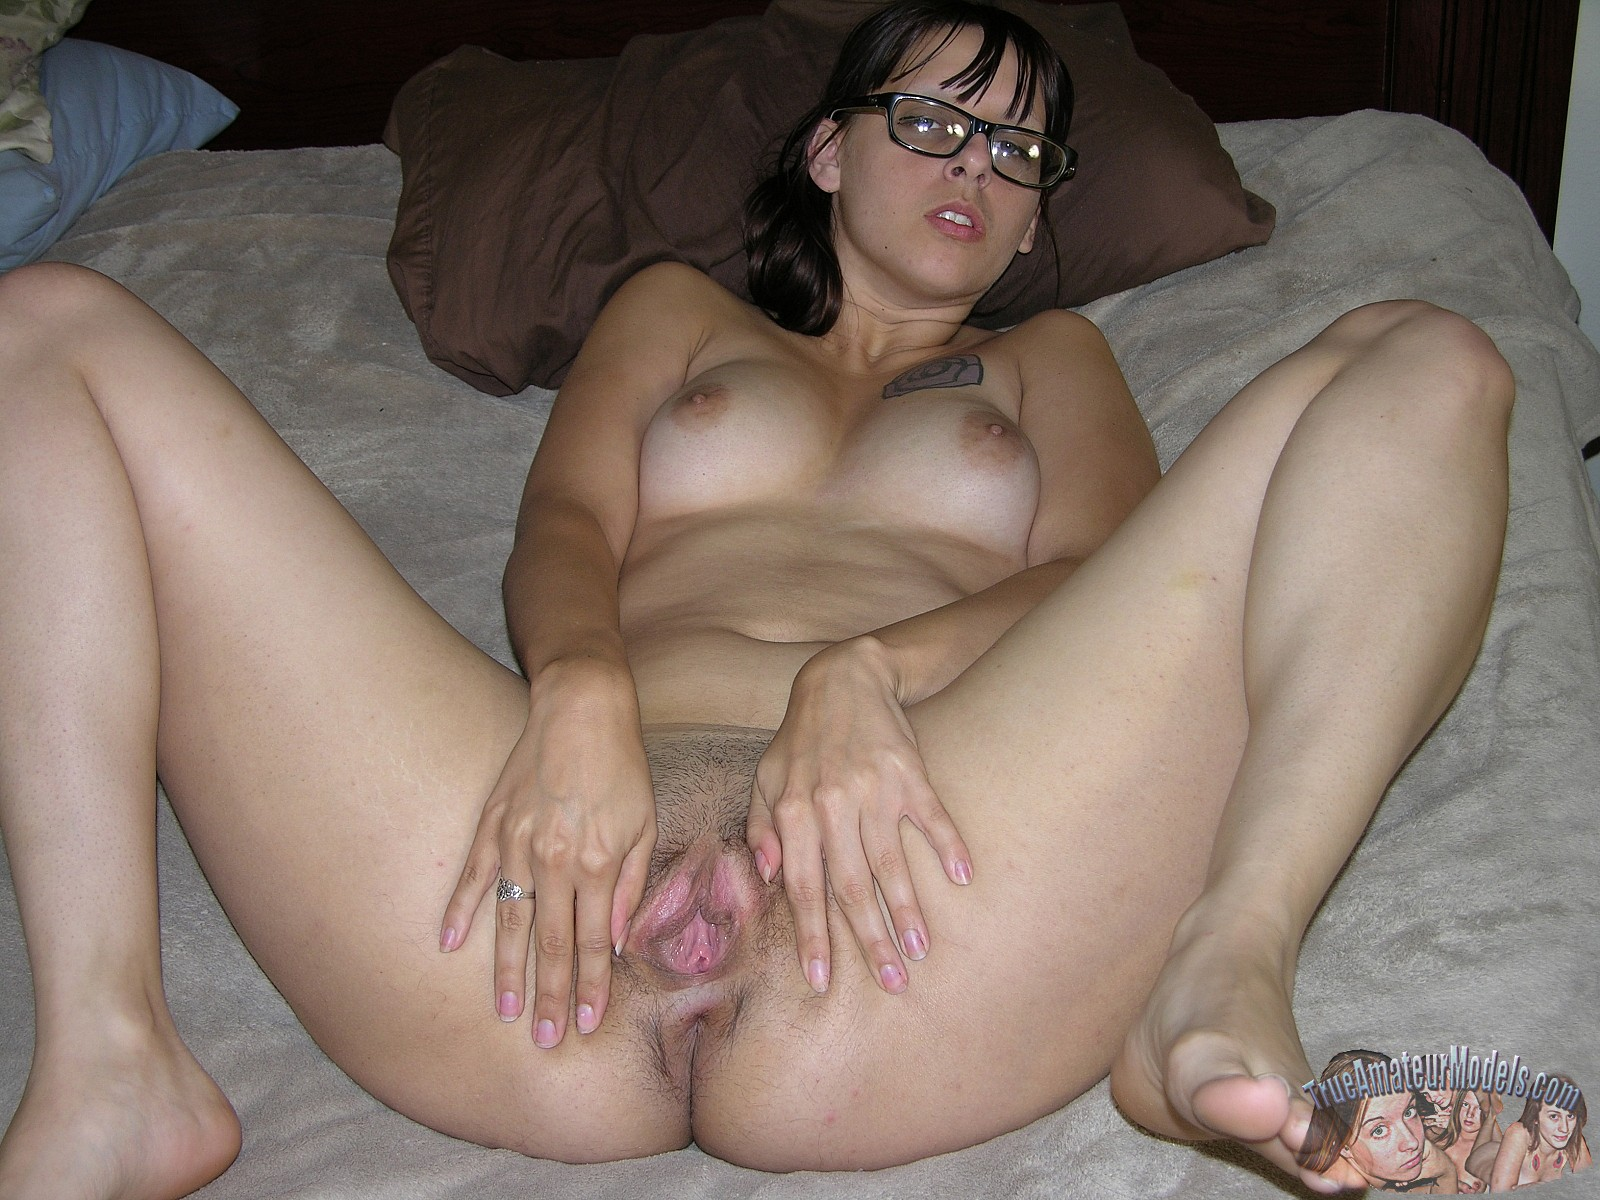 Com free fucking mature picture woman